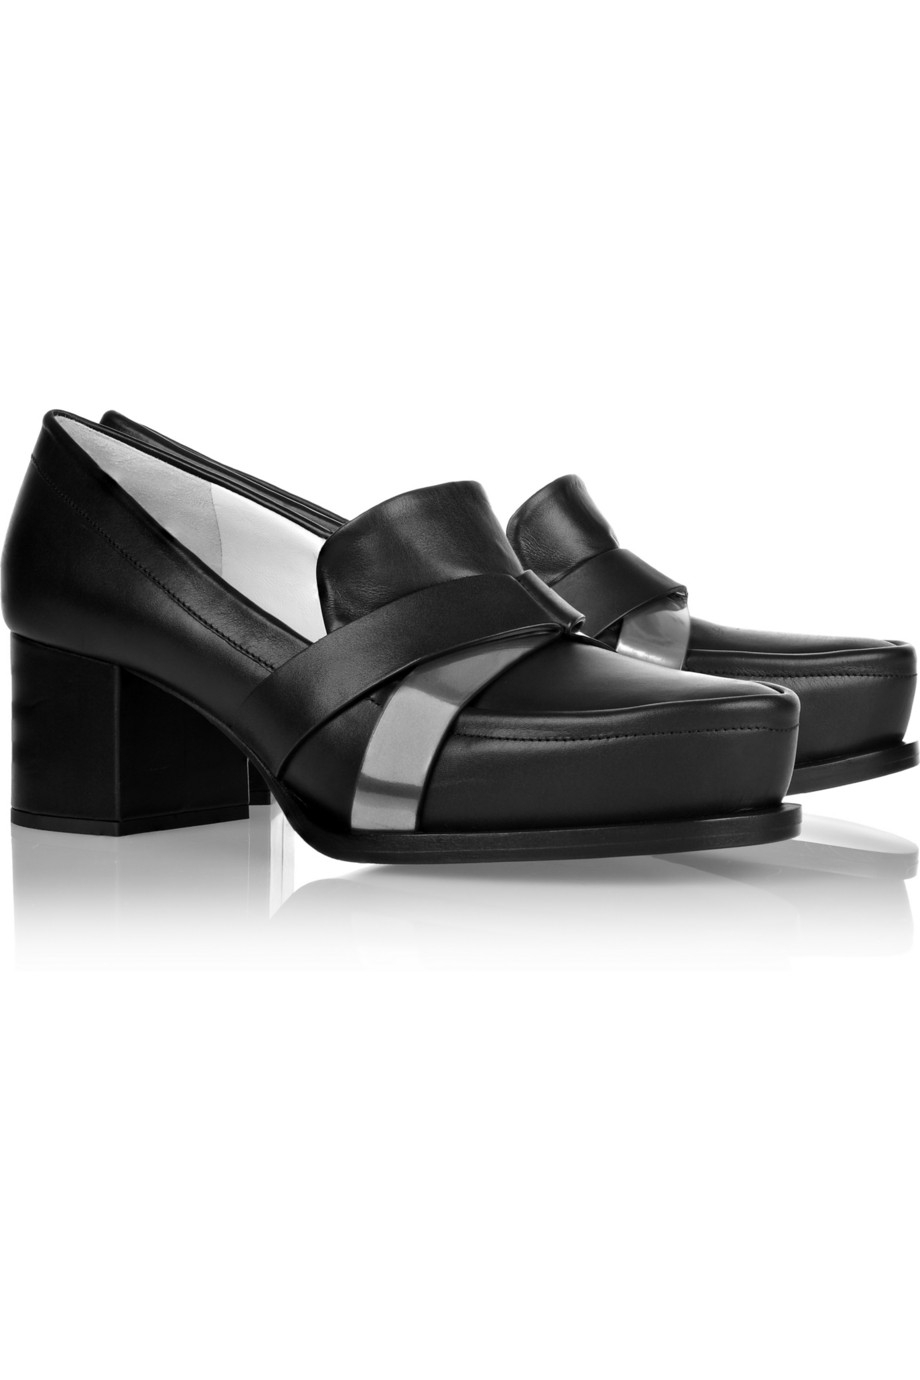 Jil Sander Leather Pumps Clearance Online Amazon Top Quality ZBY0zs